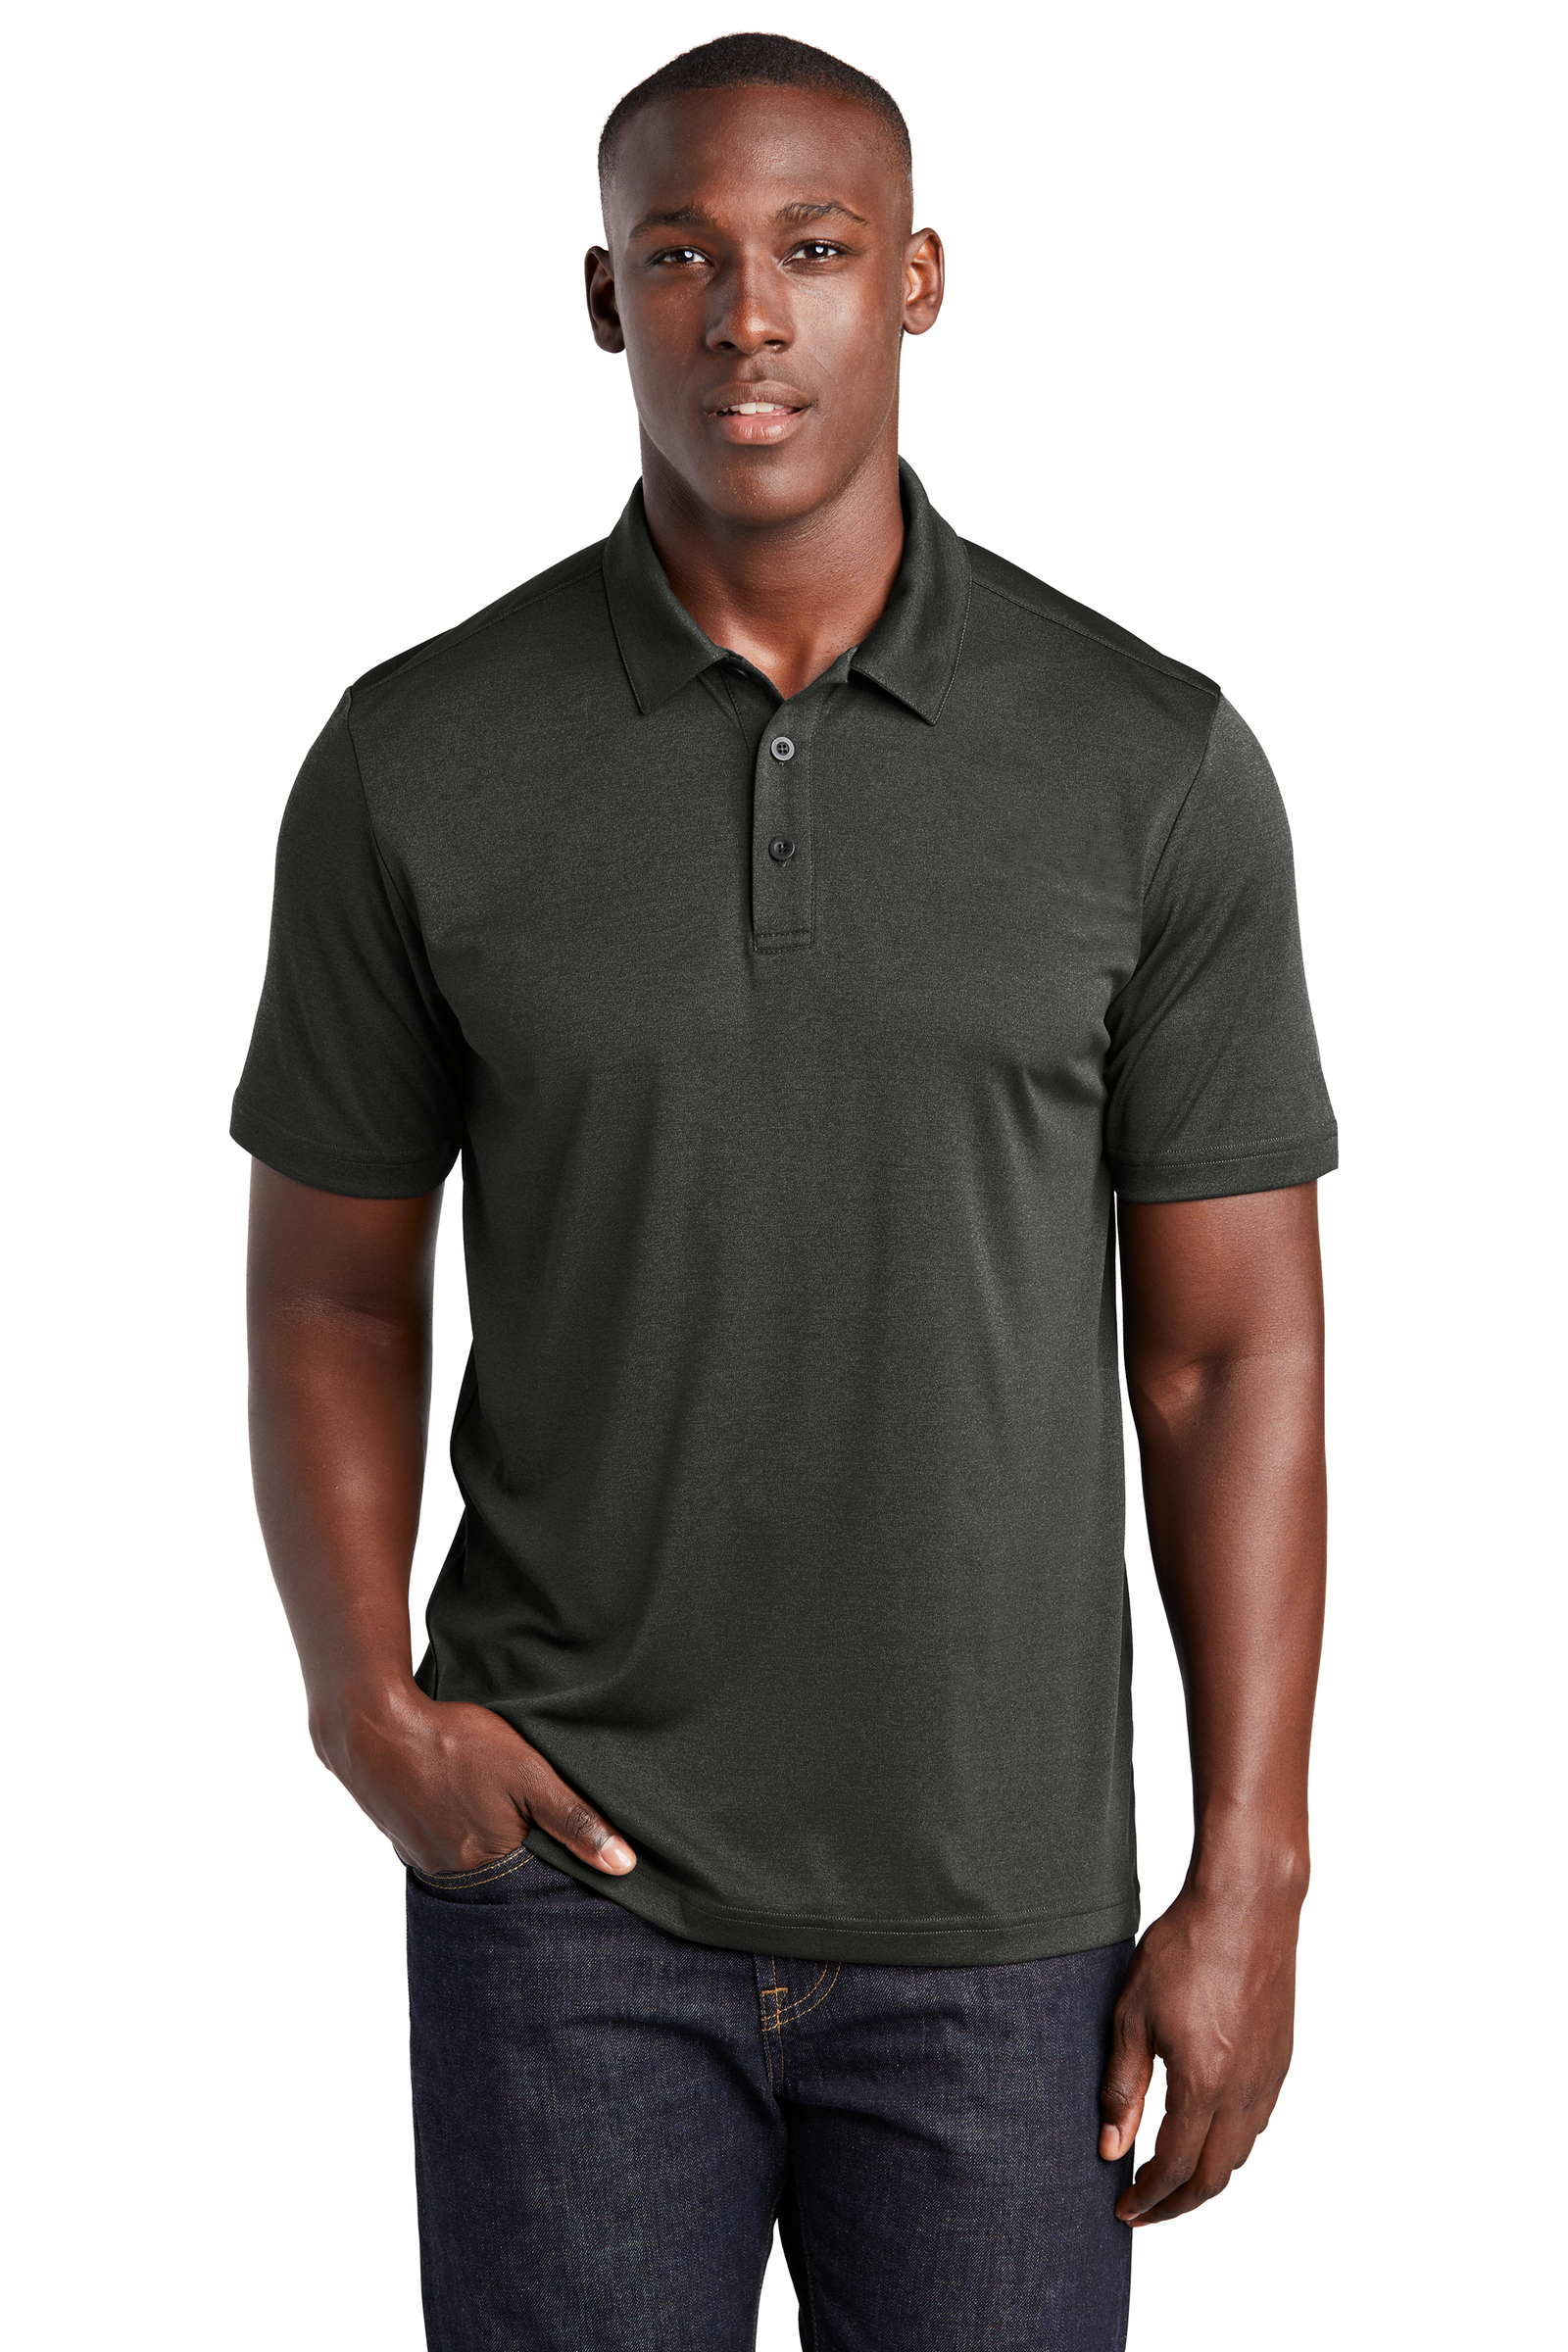 Sport-Tek Embroidered Men's Endeavor Polo